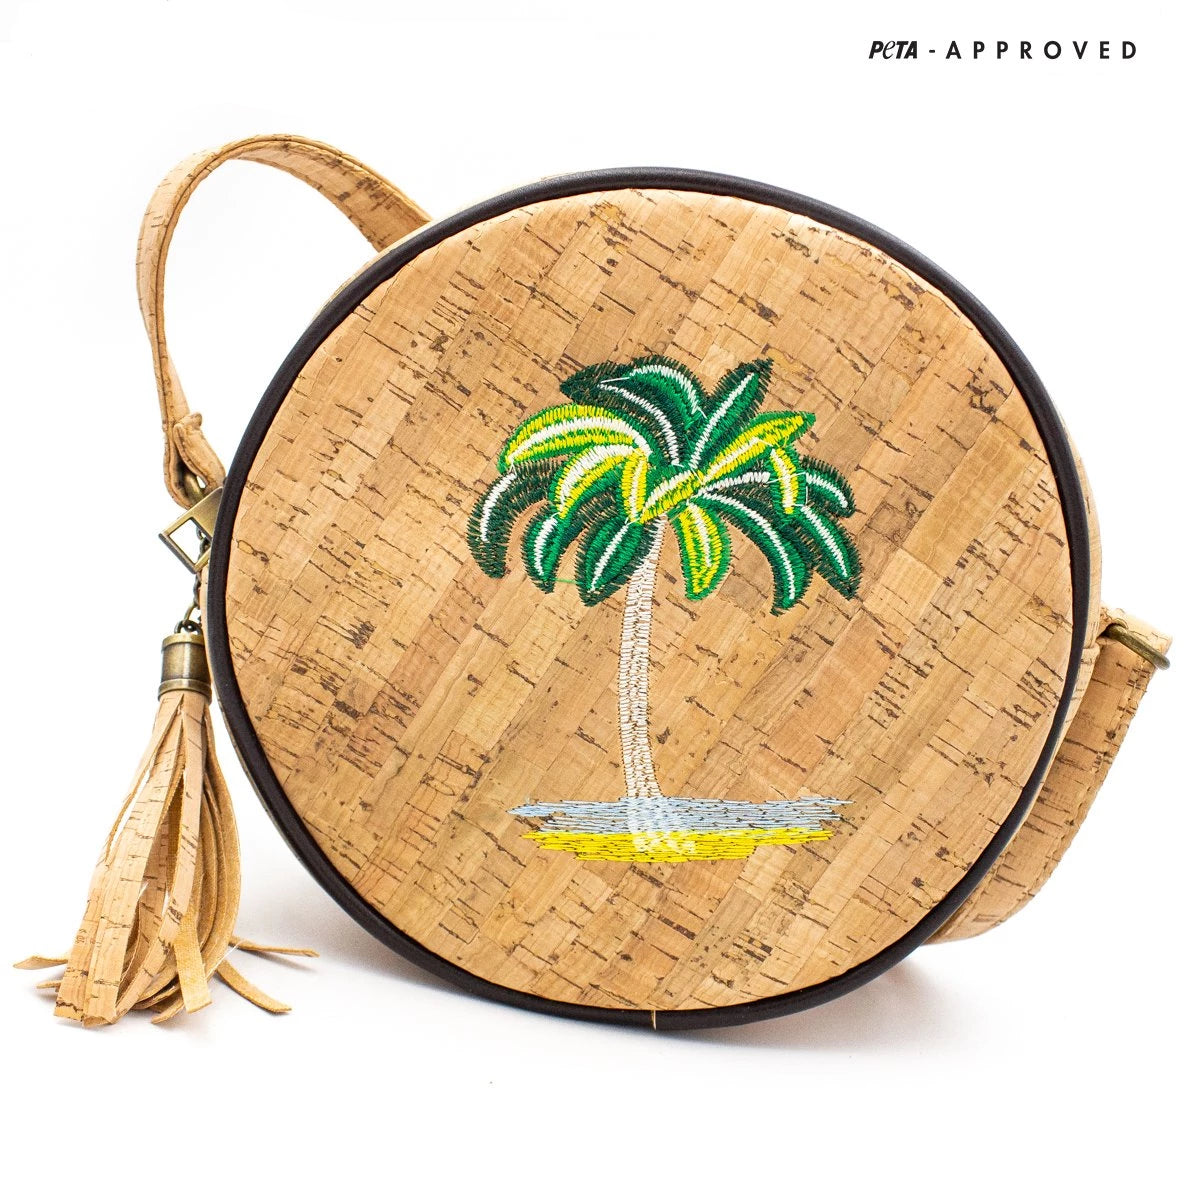 handbag, Circular Cork Bag with Sketched Embroidery Patch - movevegan, vegan fashion product trends, cork, animal free